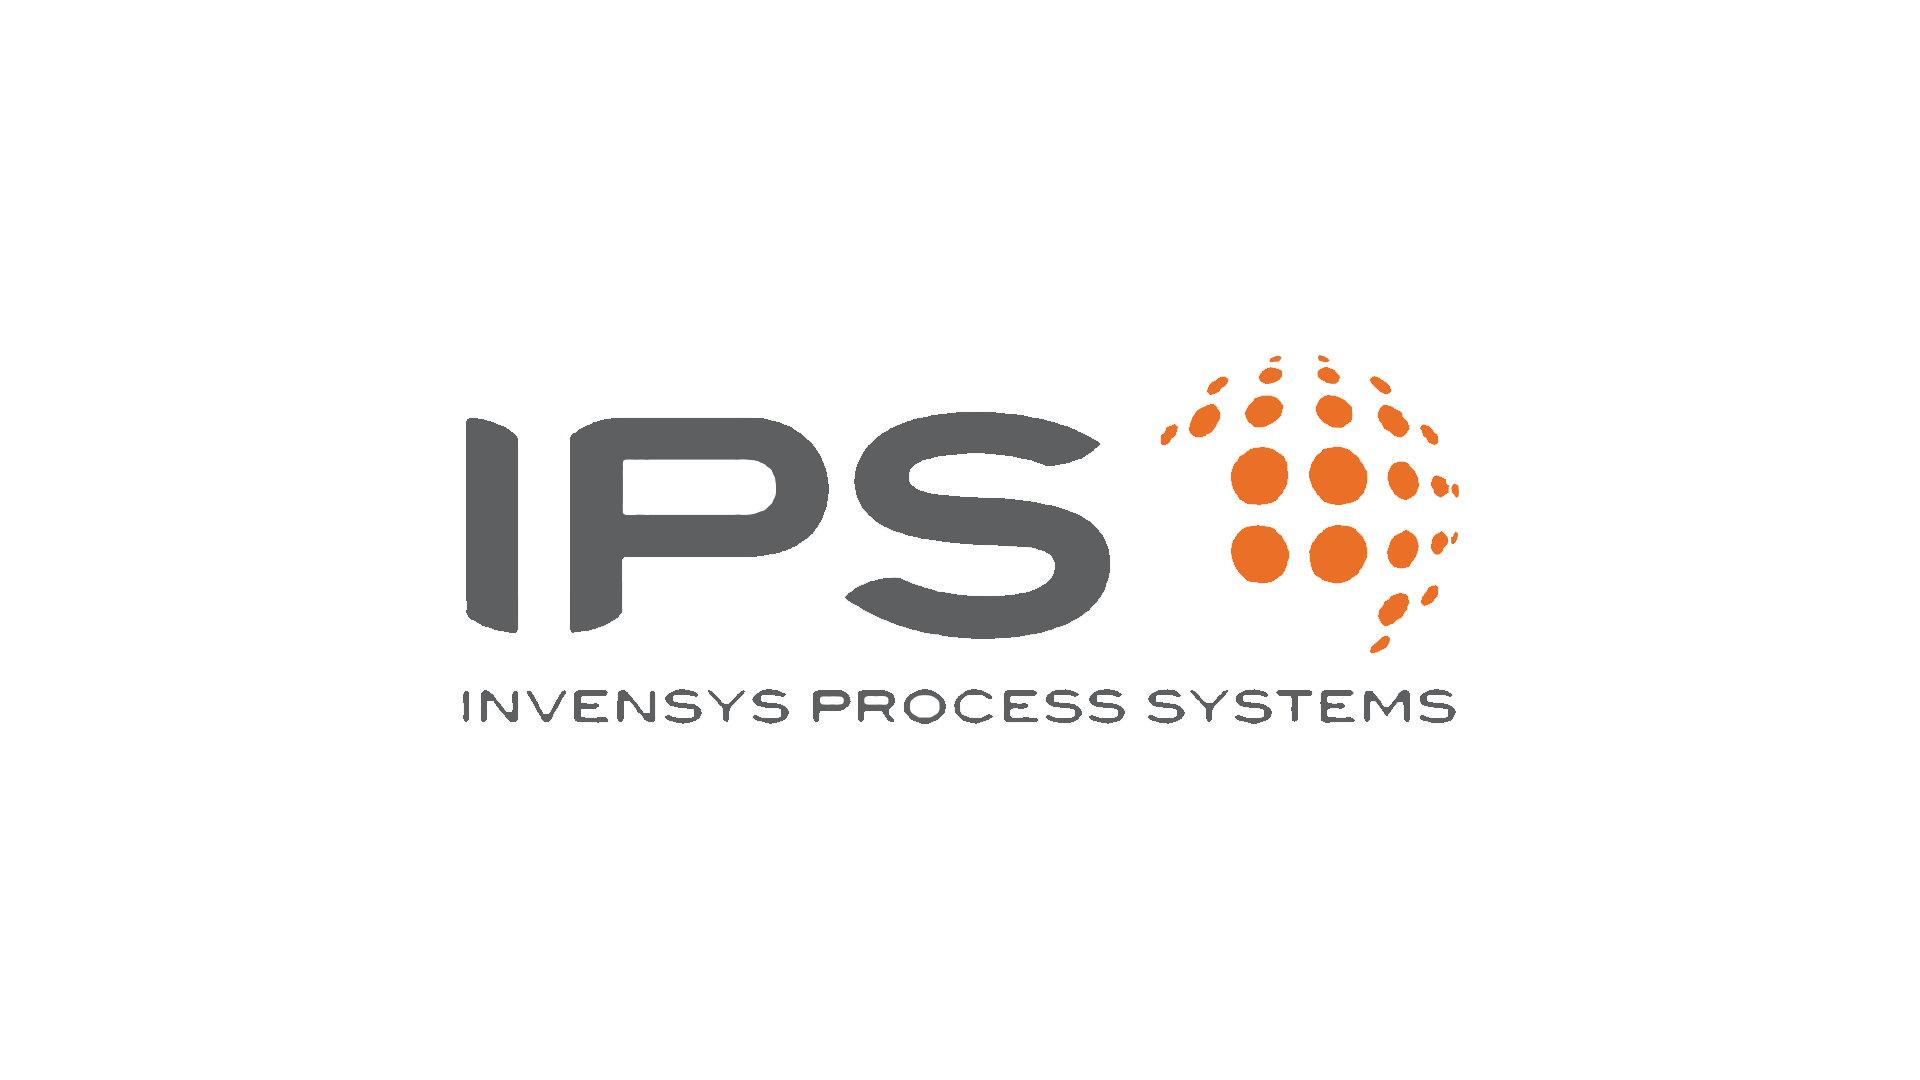 Invensys Process Systems